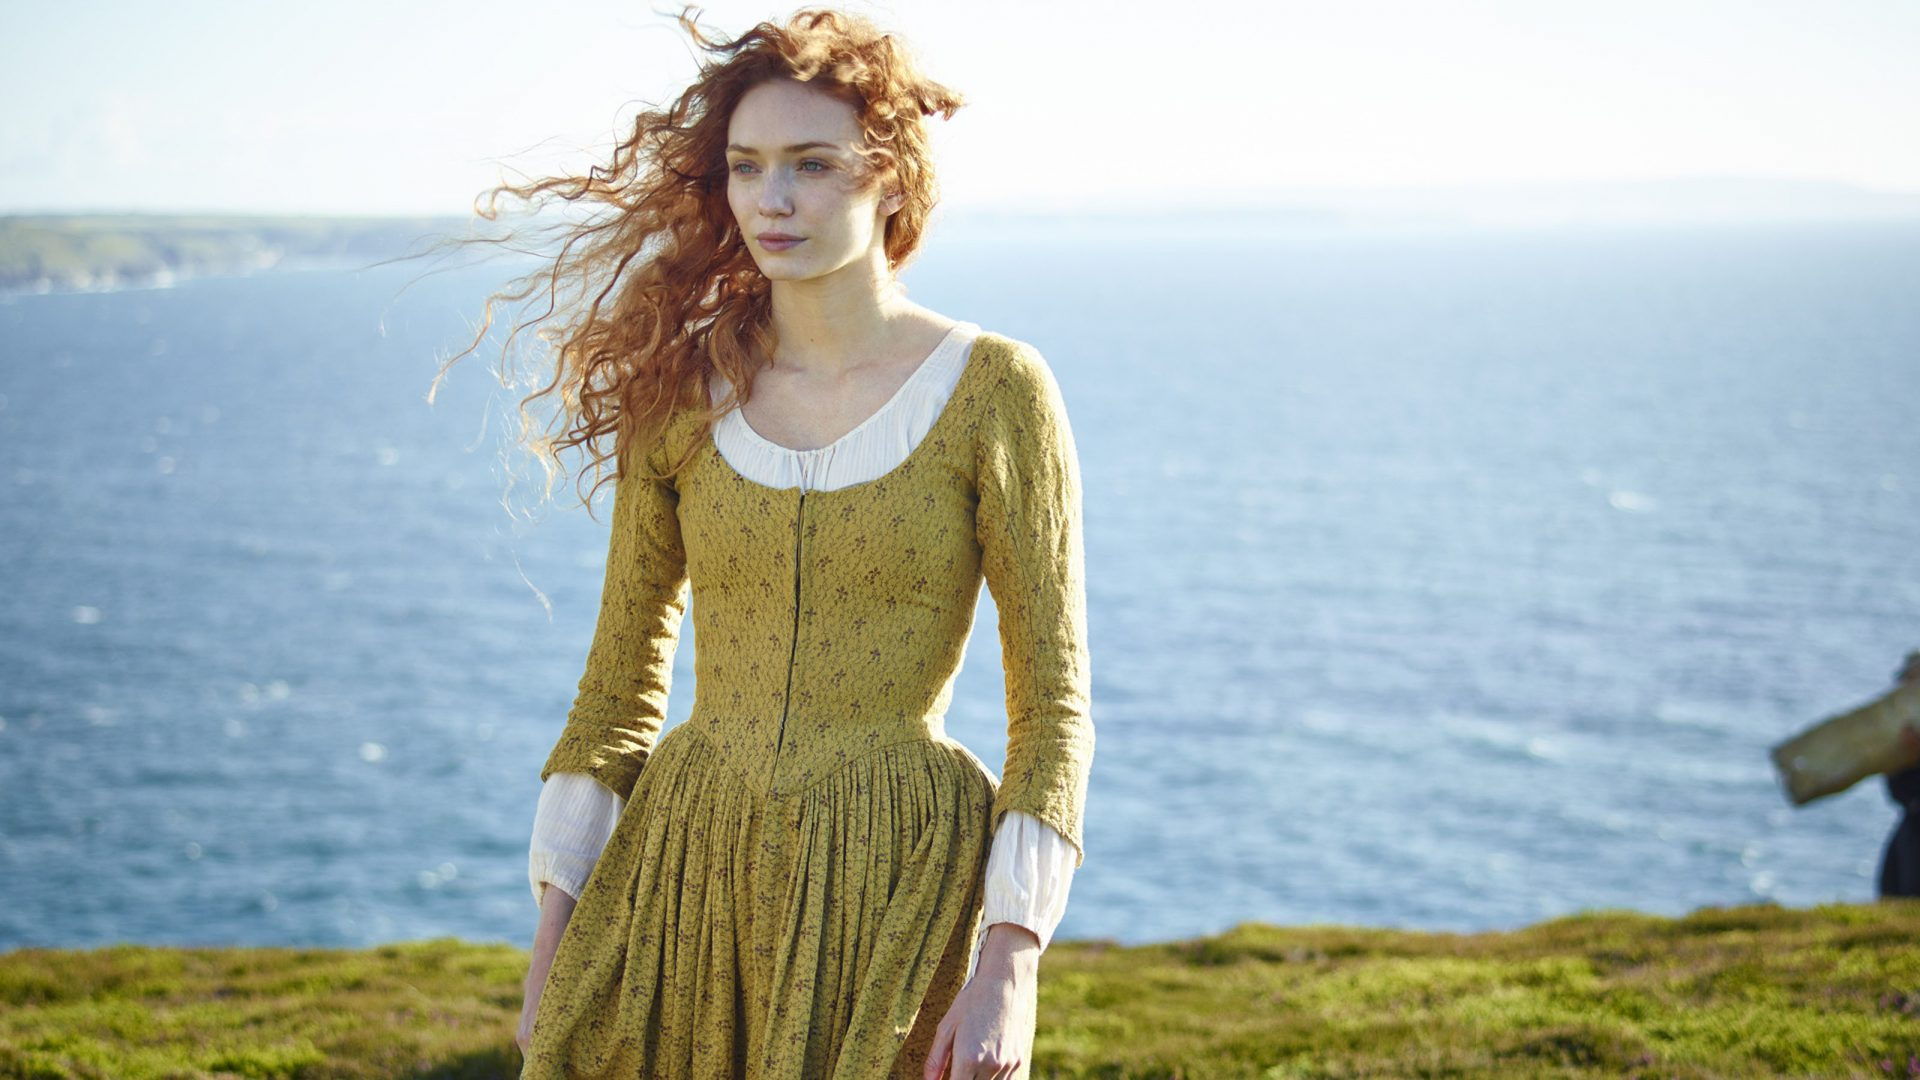 FICTION CLUB POLDARK TERZA PUNTATA SU CANALE 5